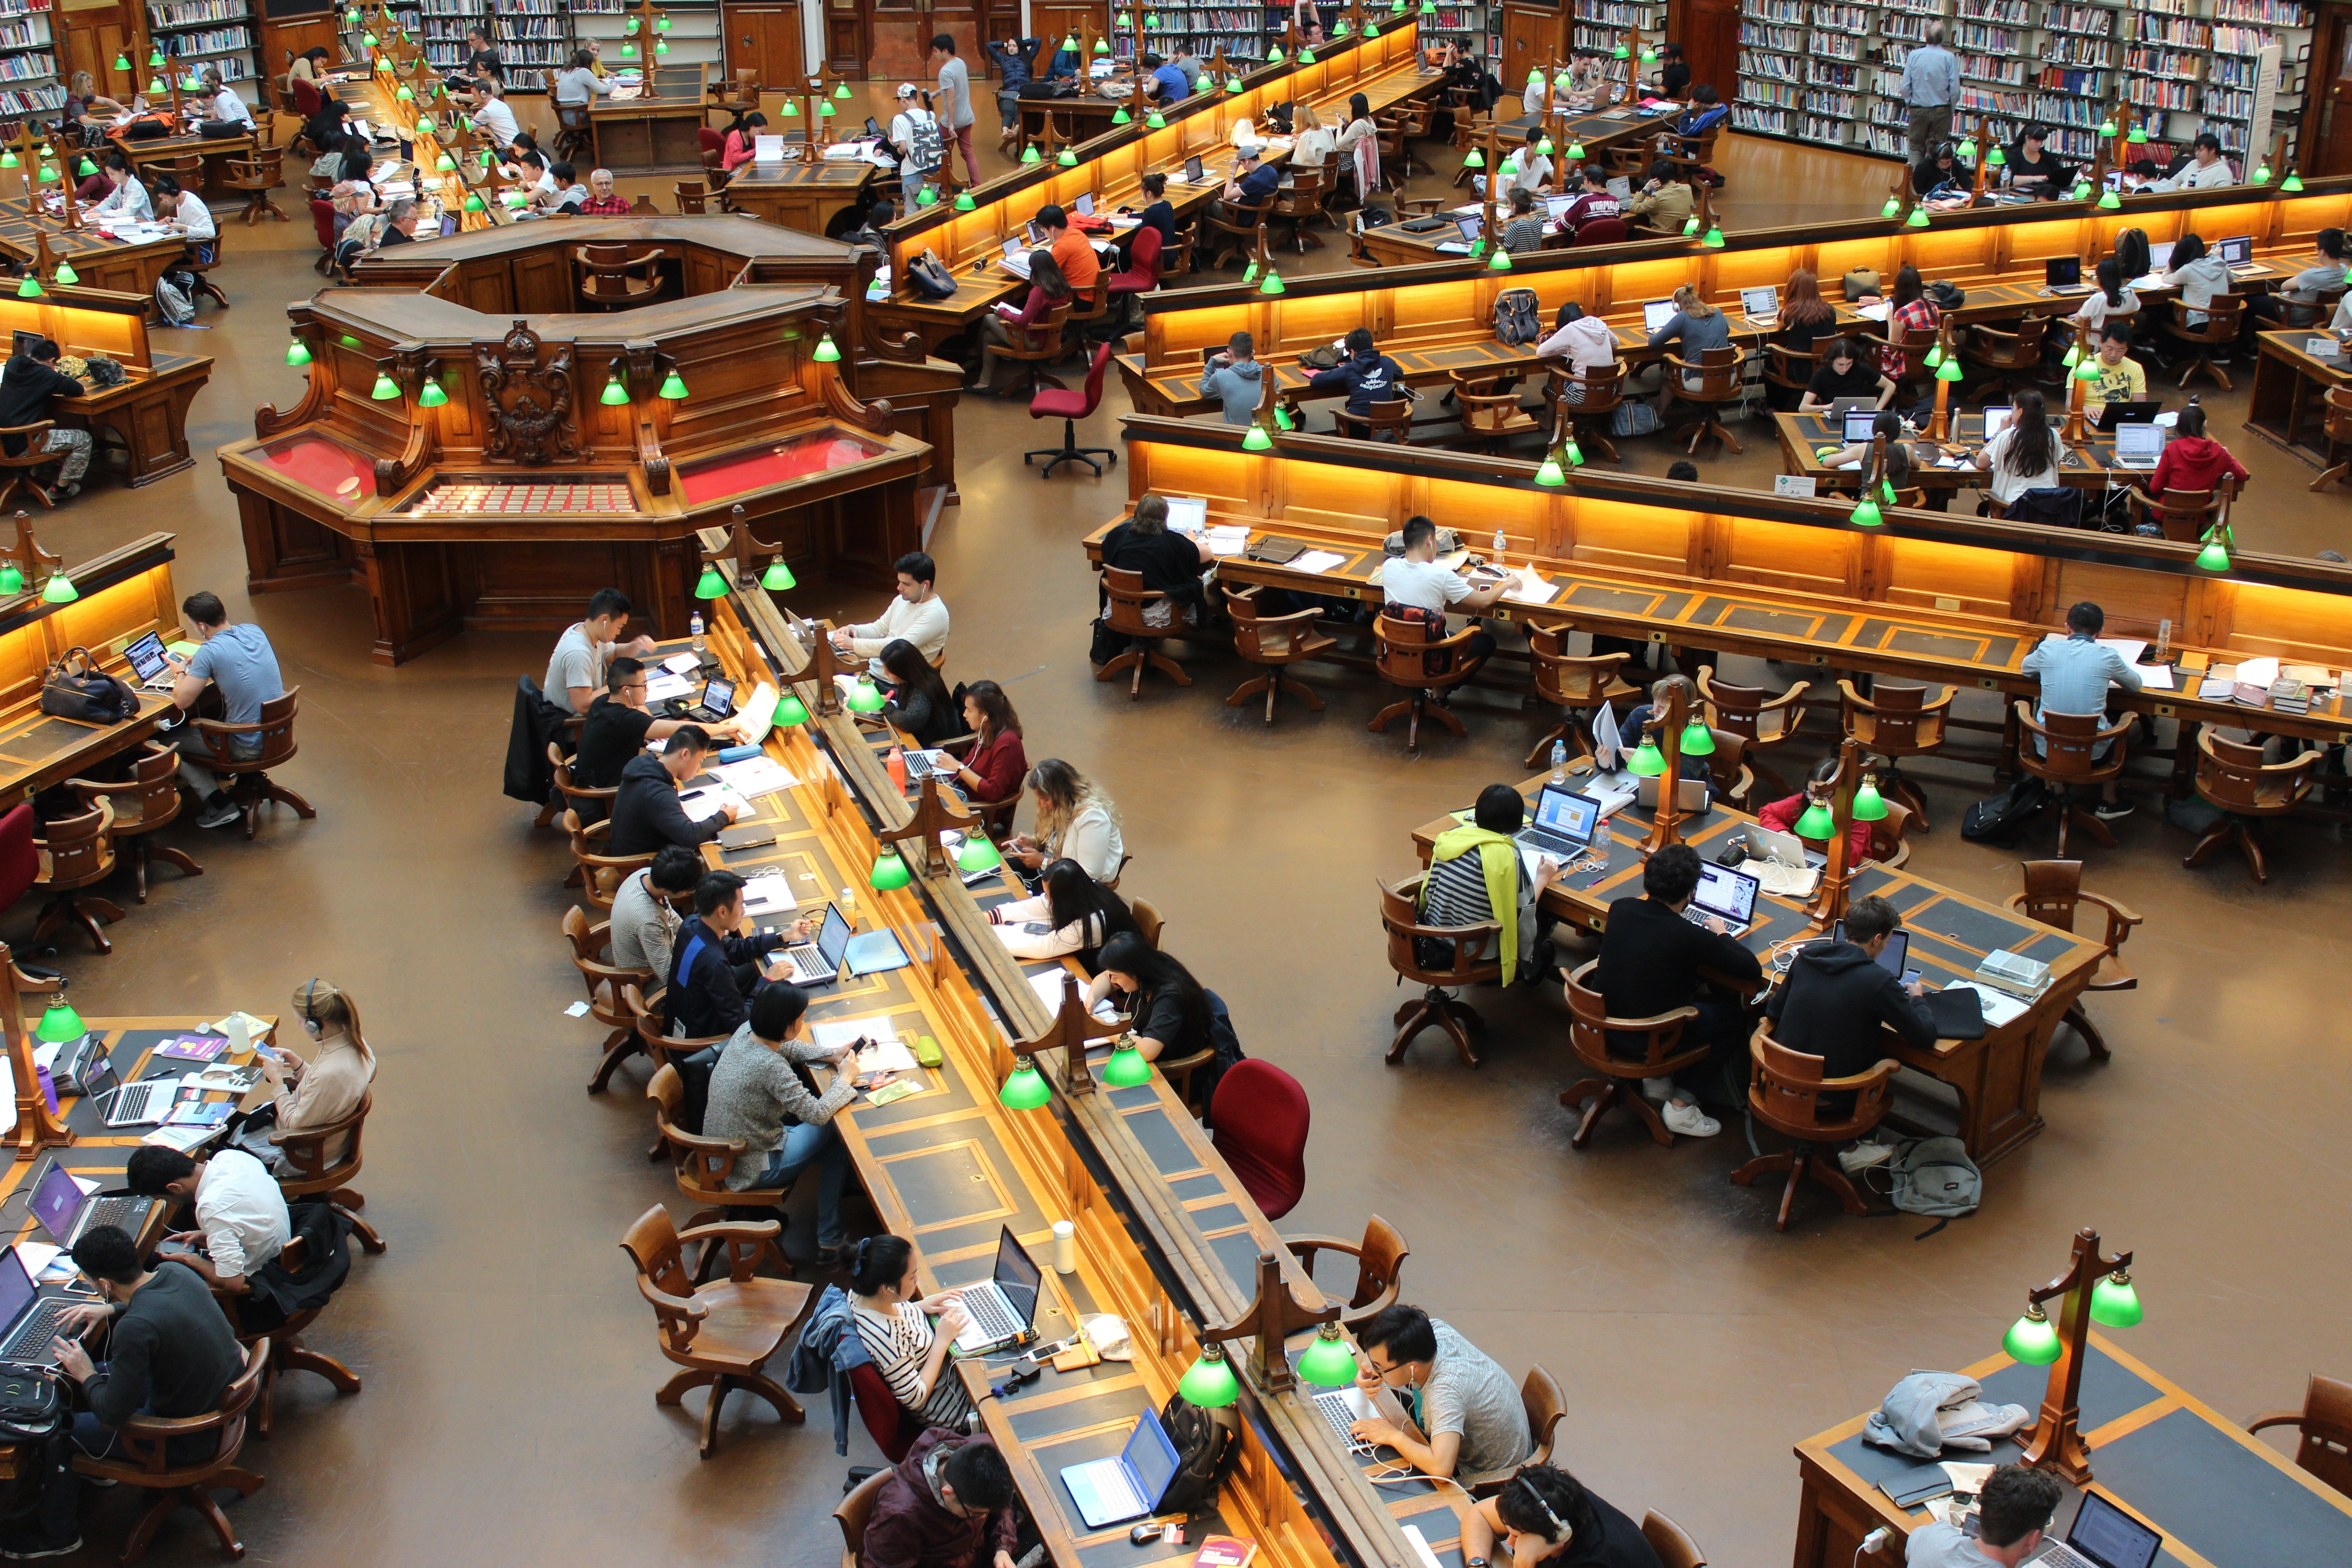 High-angle view of many people sitting at various long tables in a library